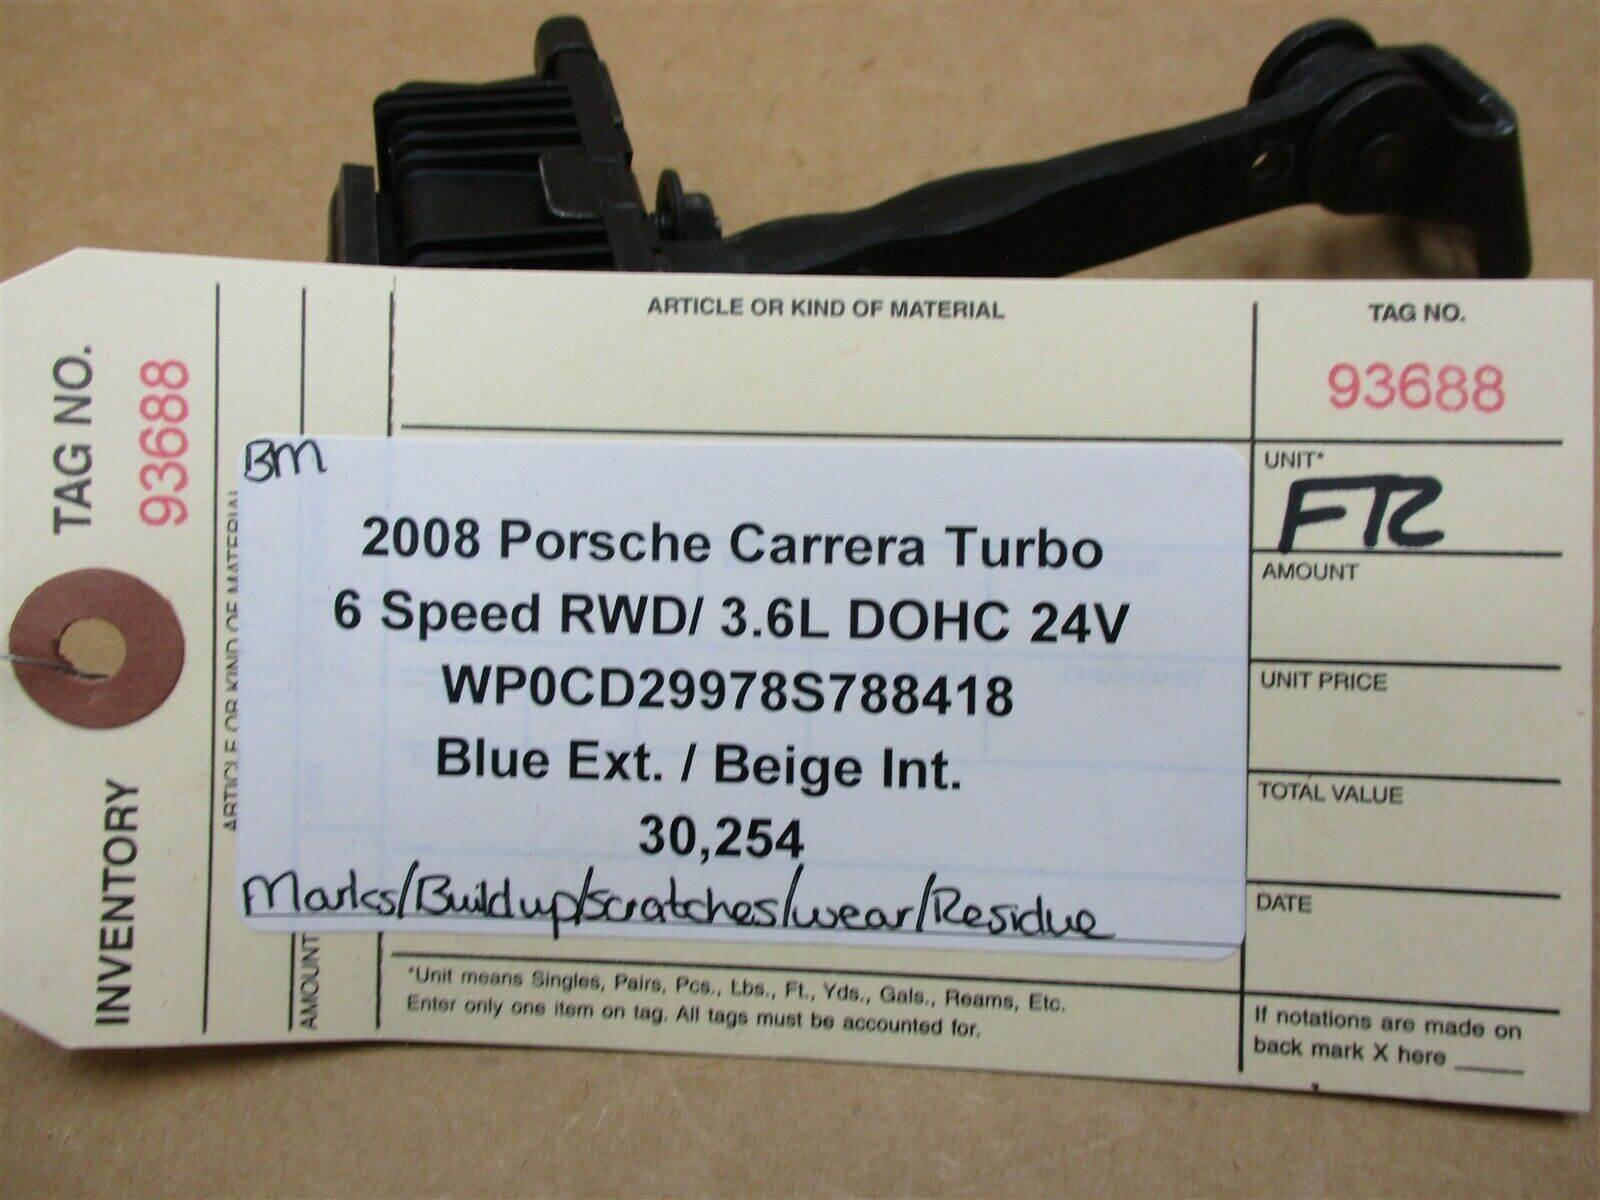 08 Carrera Turbo 911 Porsche 997 R FRONT DOOR CHECK ARRESTER 99753715102 30,254